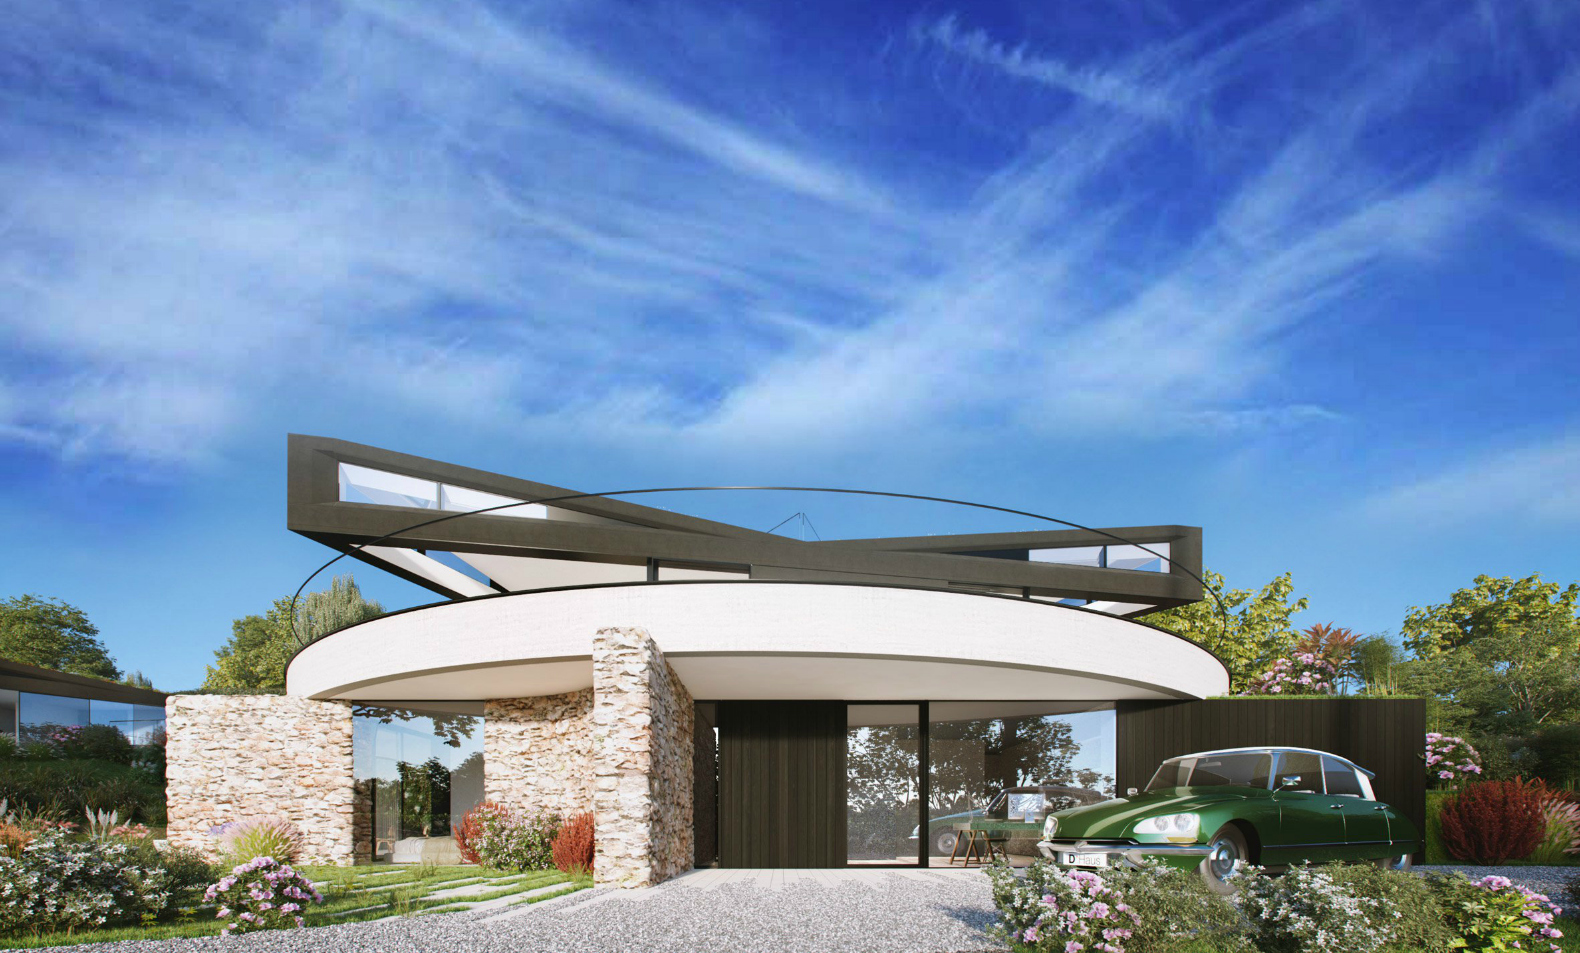 This amazing rotating home lets you change the view with a push of a button